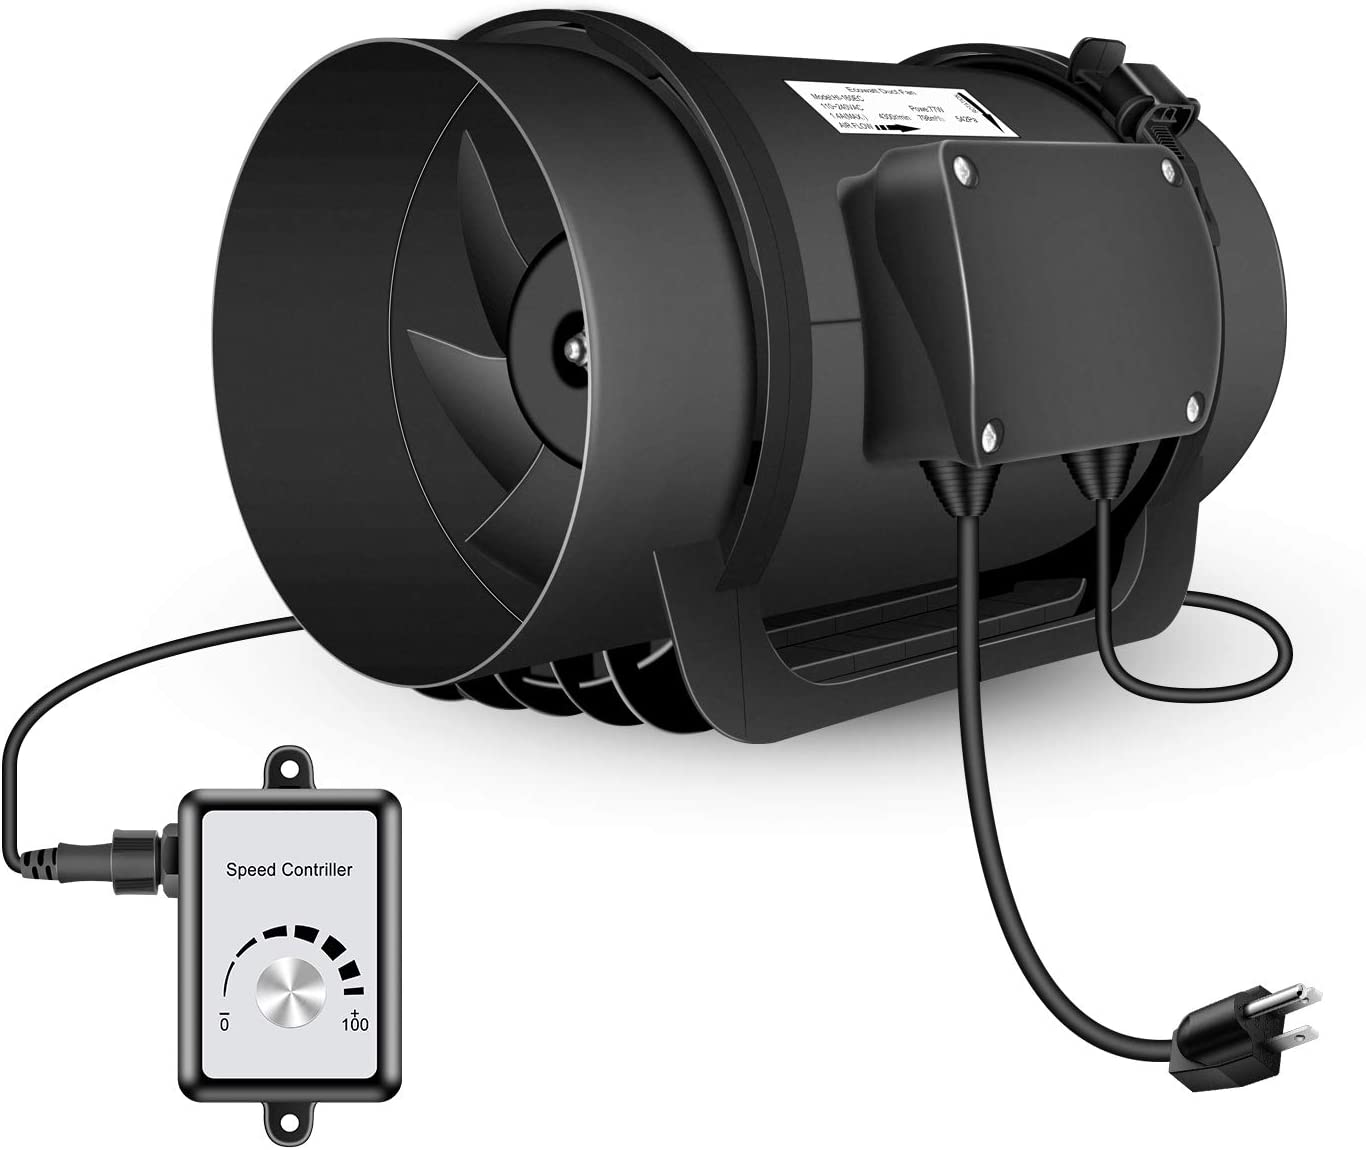 Hon&Guan Inline Duct Fan with Variable Speed Controller 760 CFM, Low Noise EC Motor Ventilation Fan for Heating Cooling Booster, Grow Tents, Hydroponics(8 Inch)